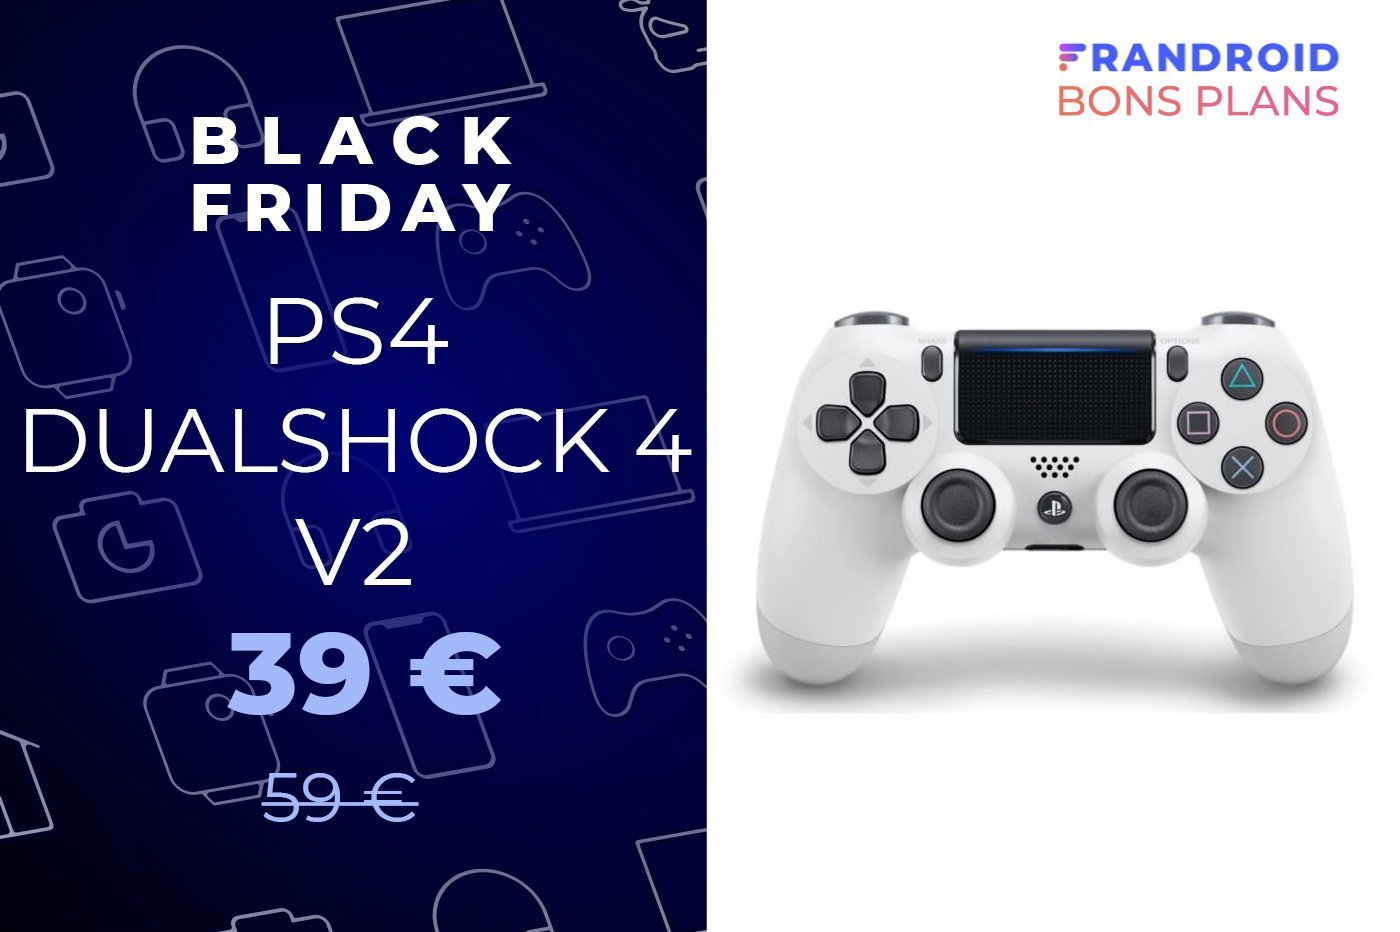 La manette PS4 Dualshock 4 V2 à -33 % pour le Black Friday